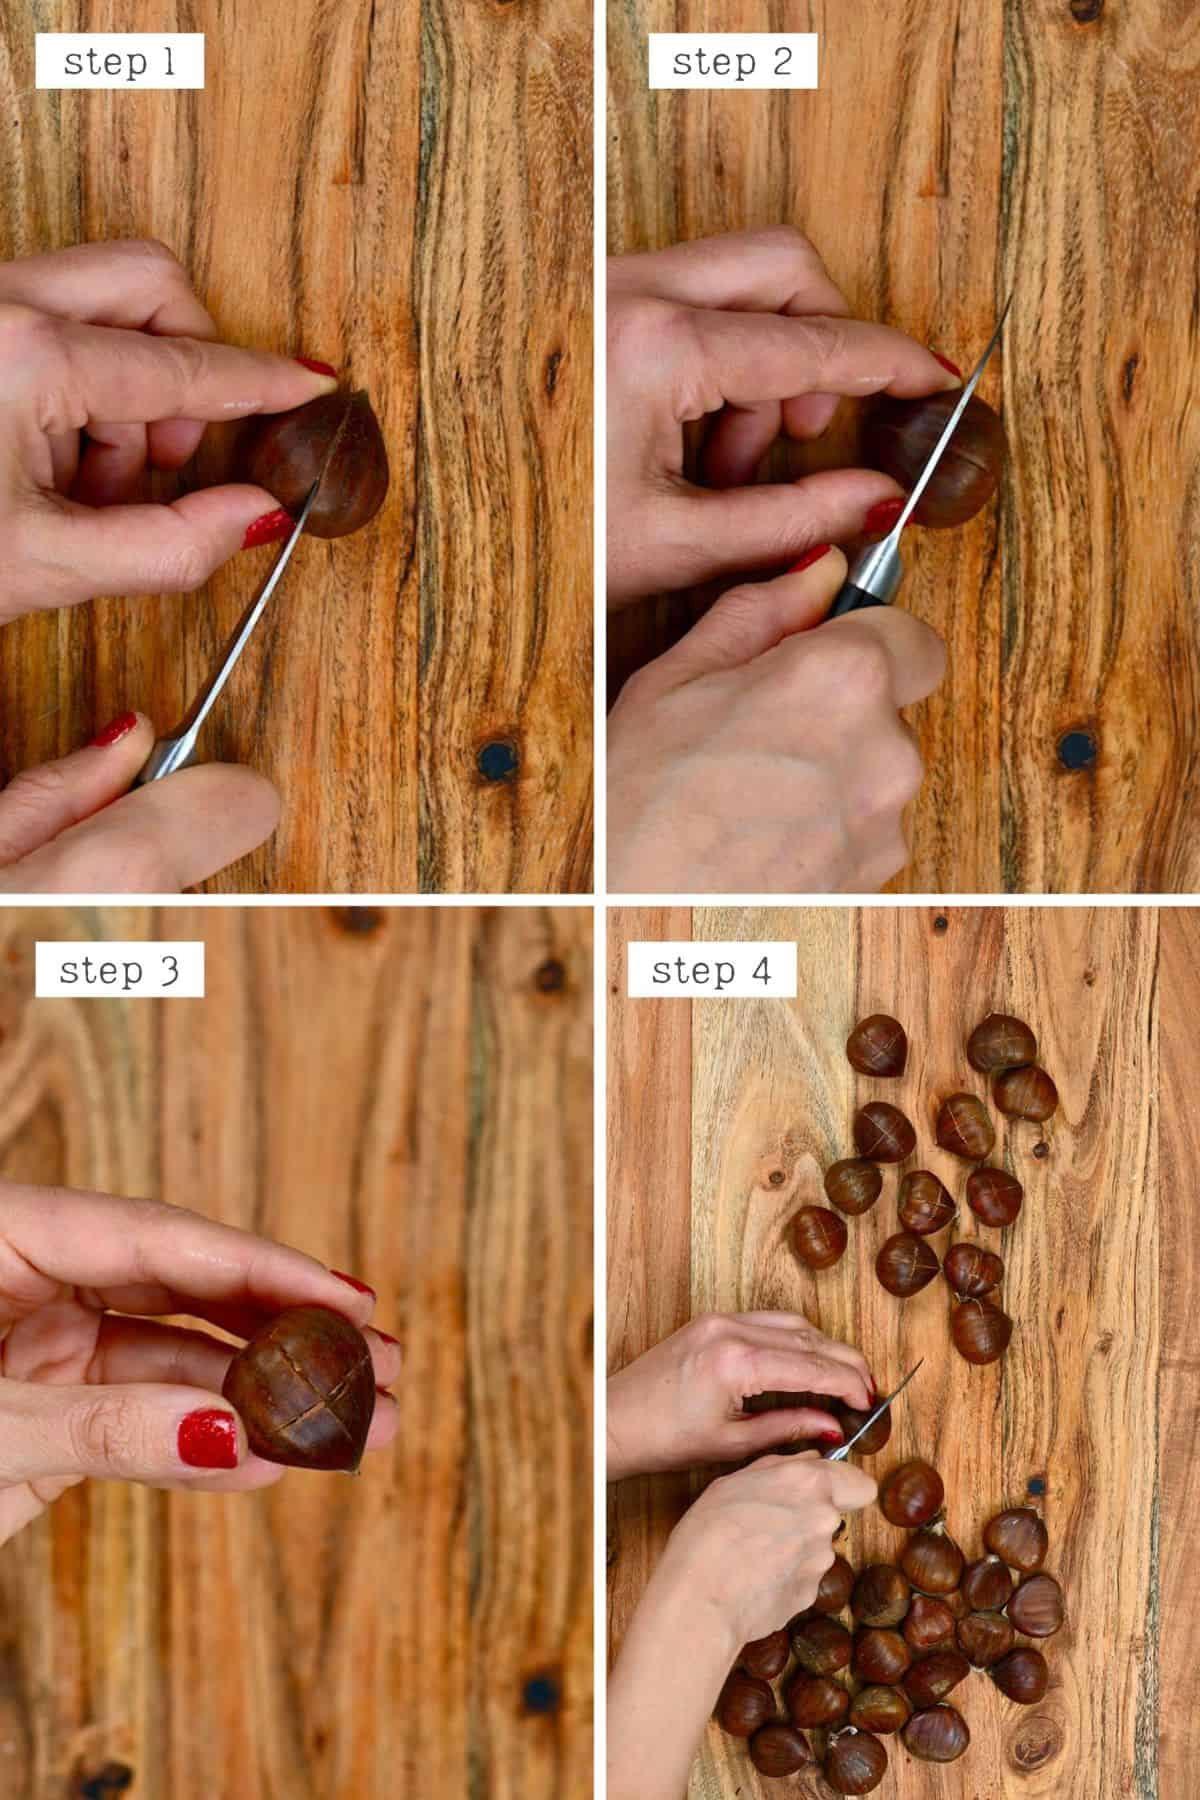 Steps for cutting chestnuts